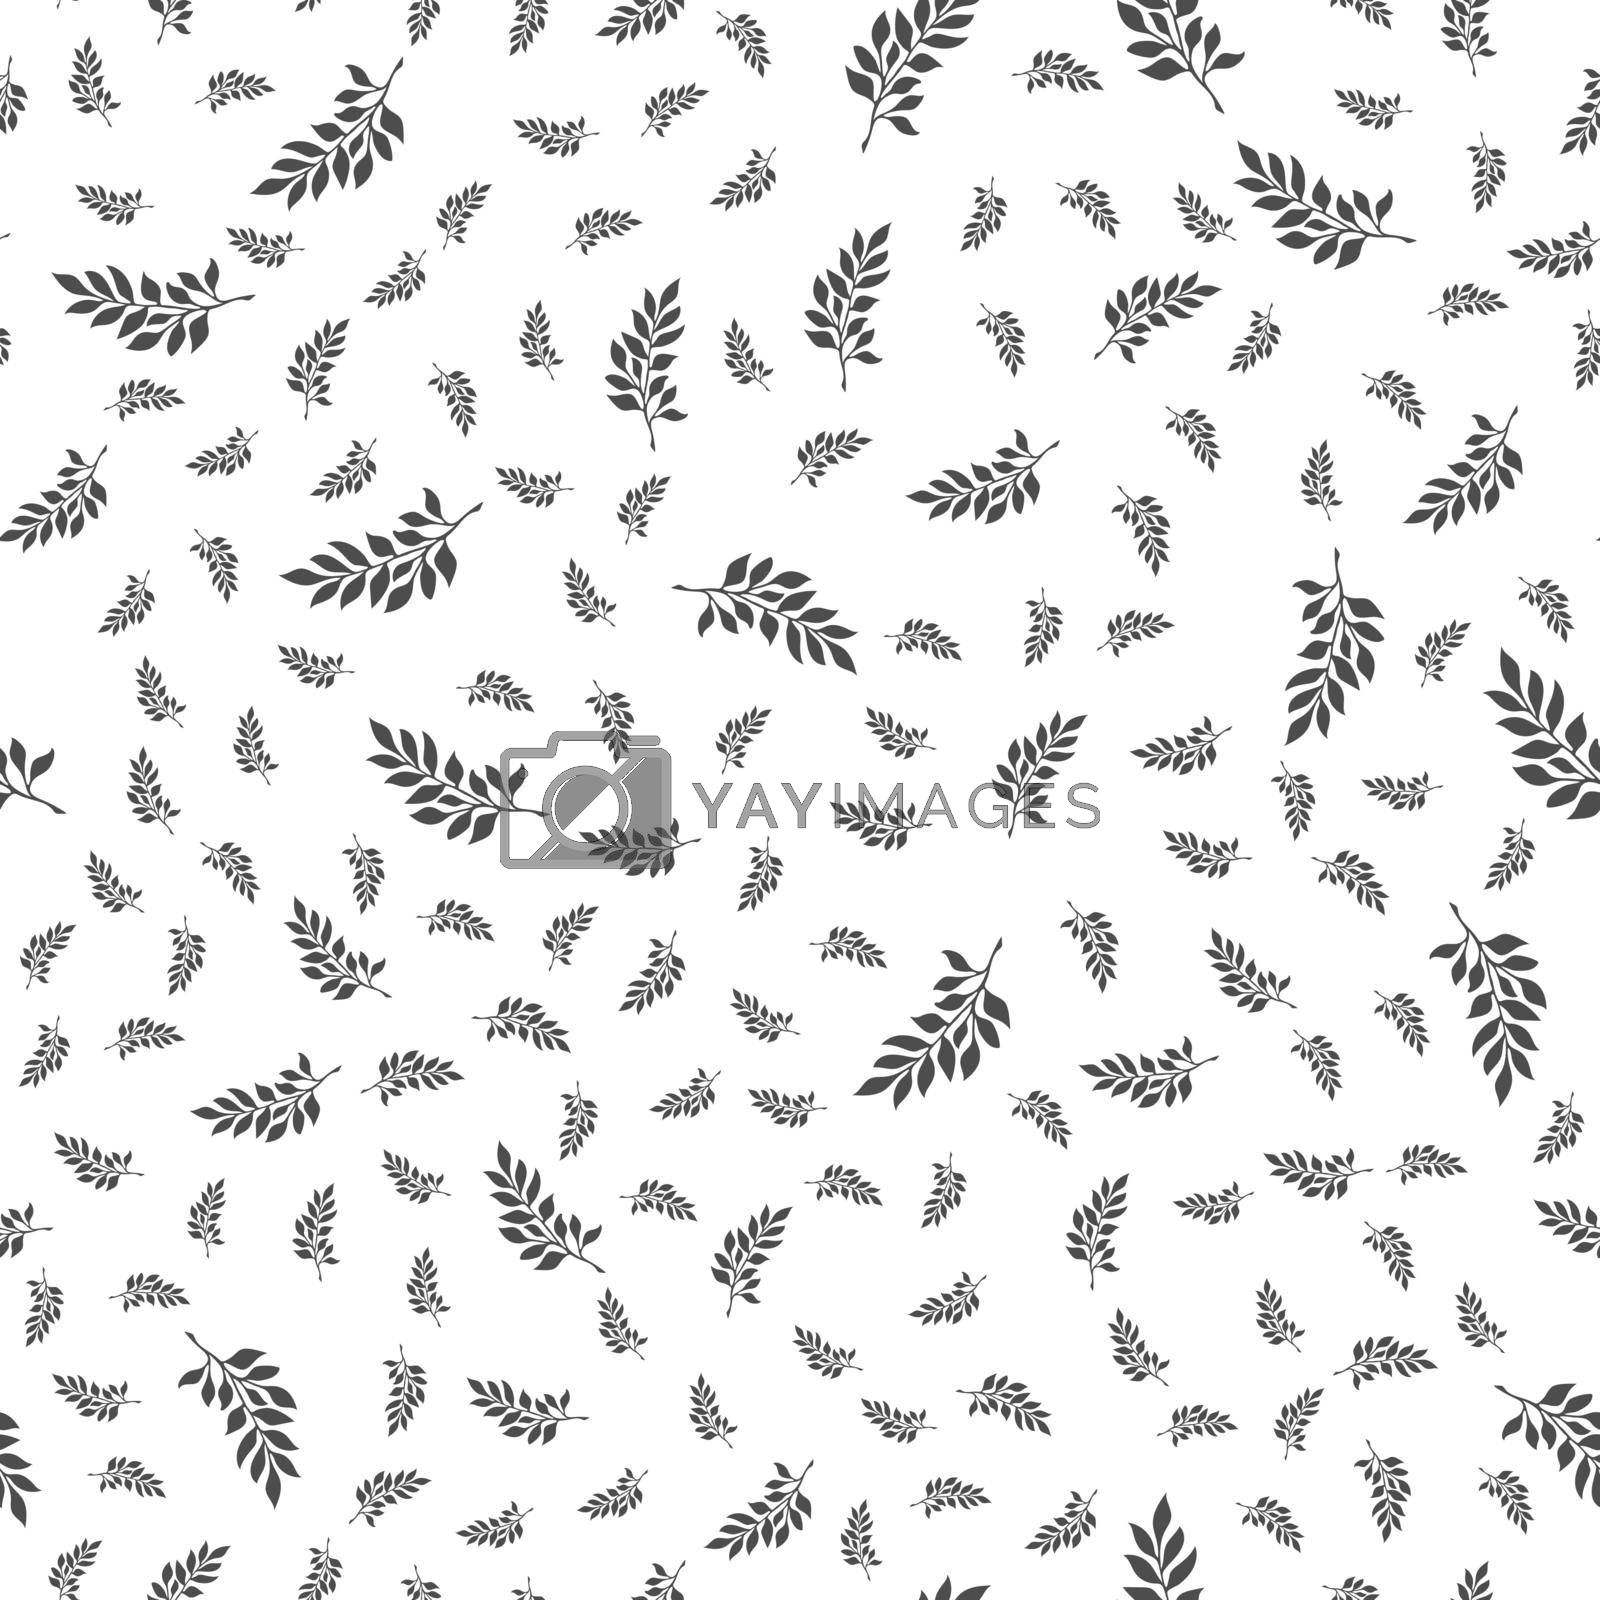 Seamless natural pattern of plant branches for texture, textiles and simple backgrounds. Flat design.